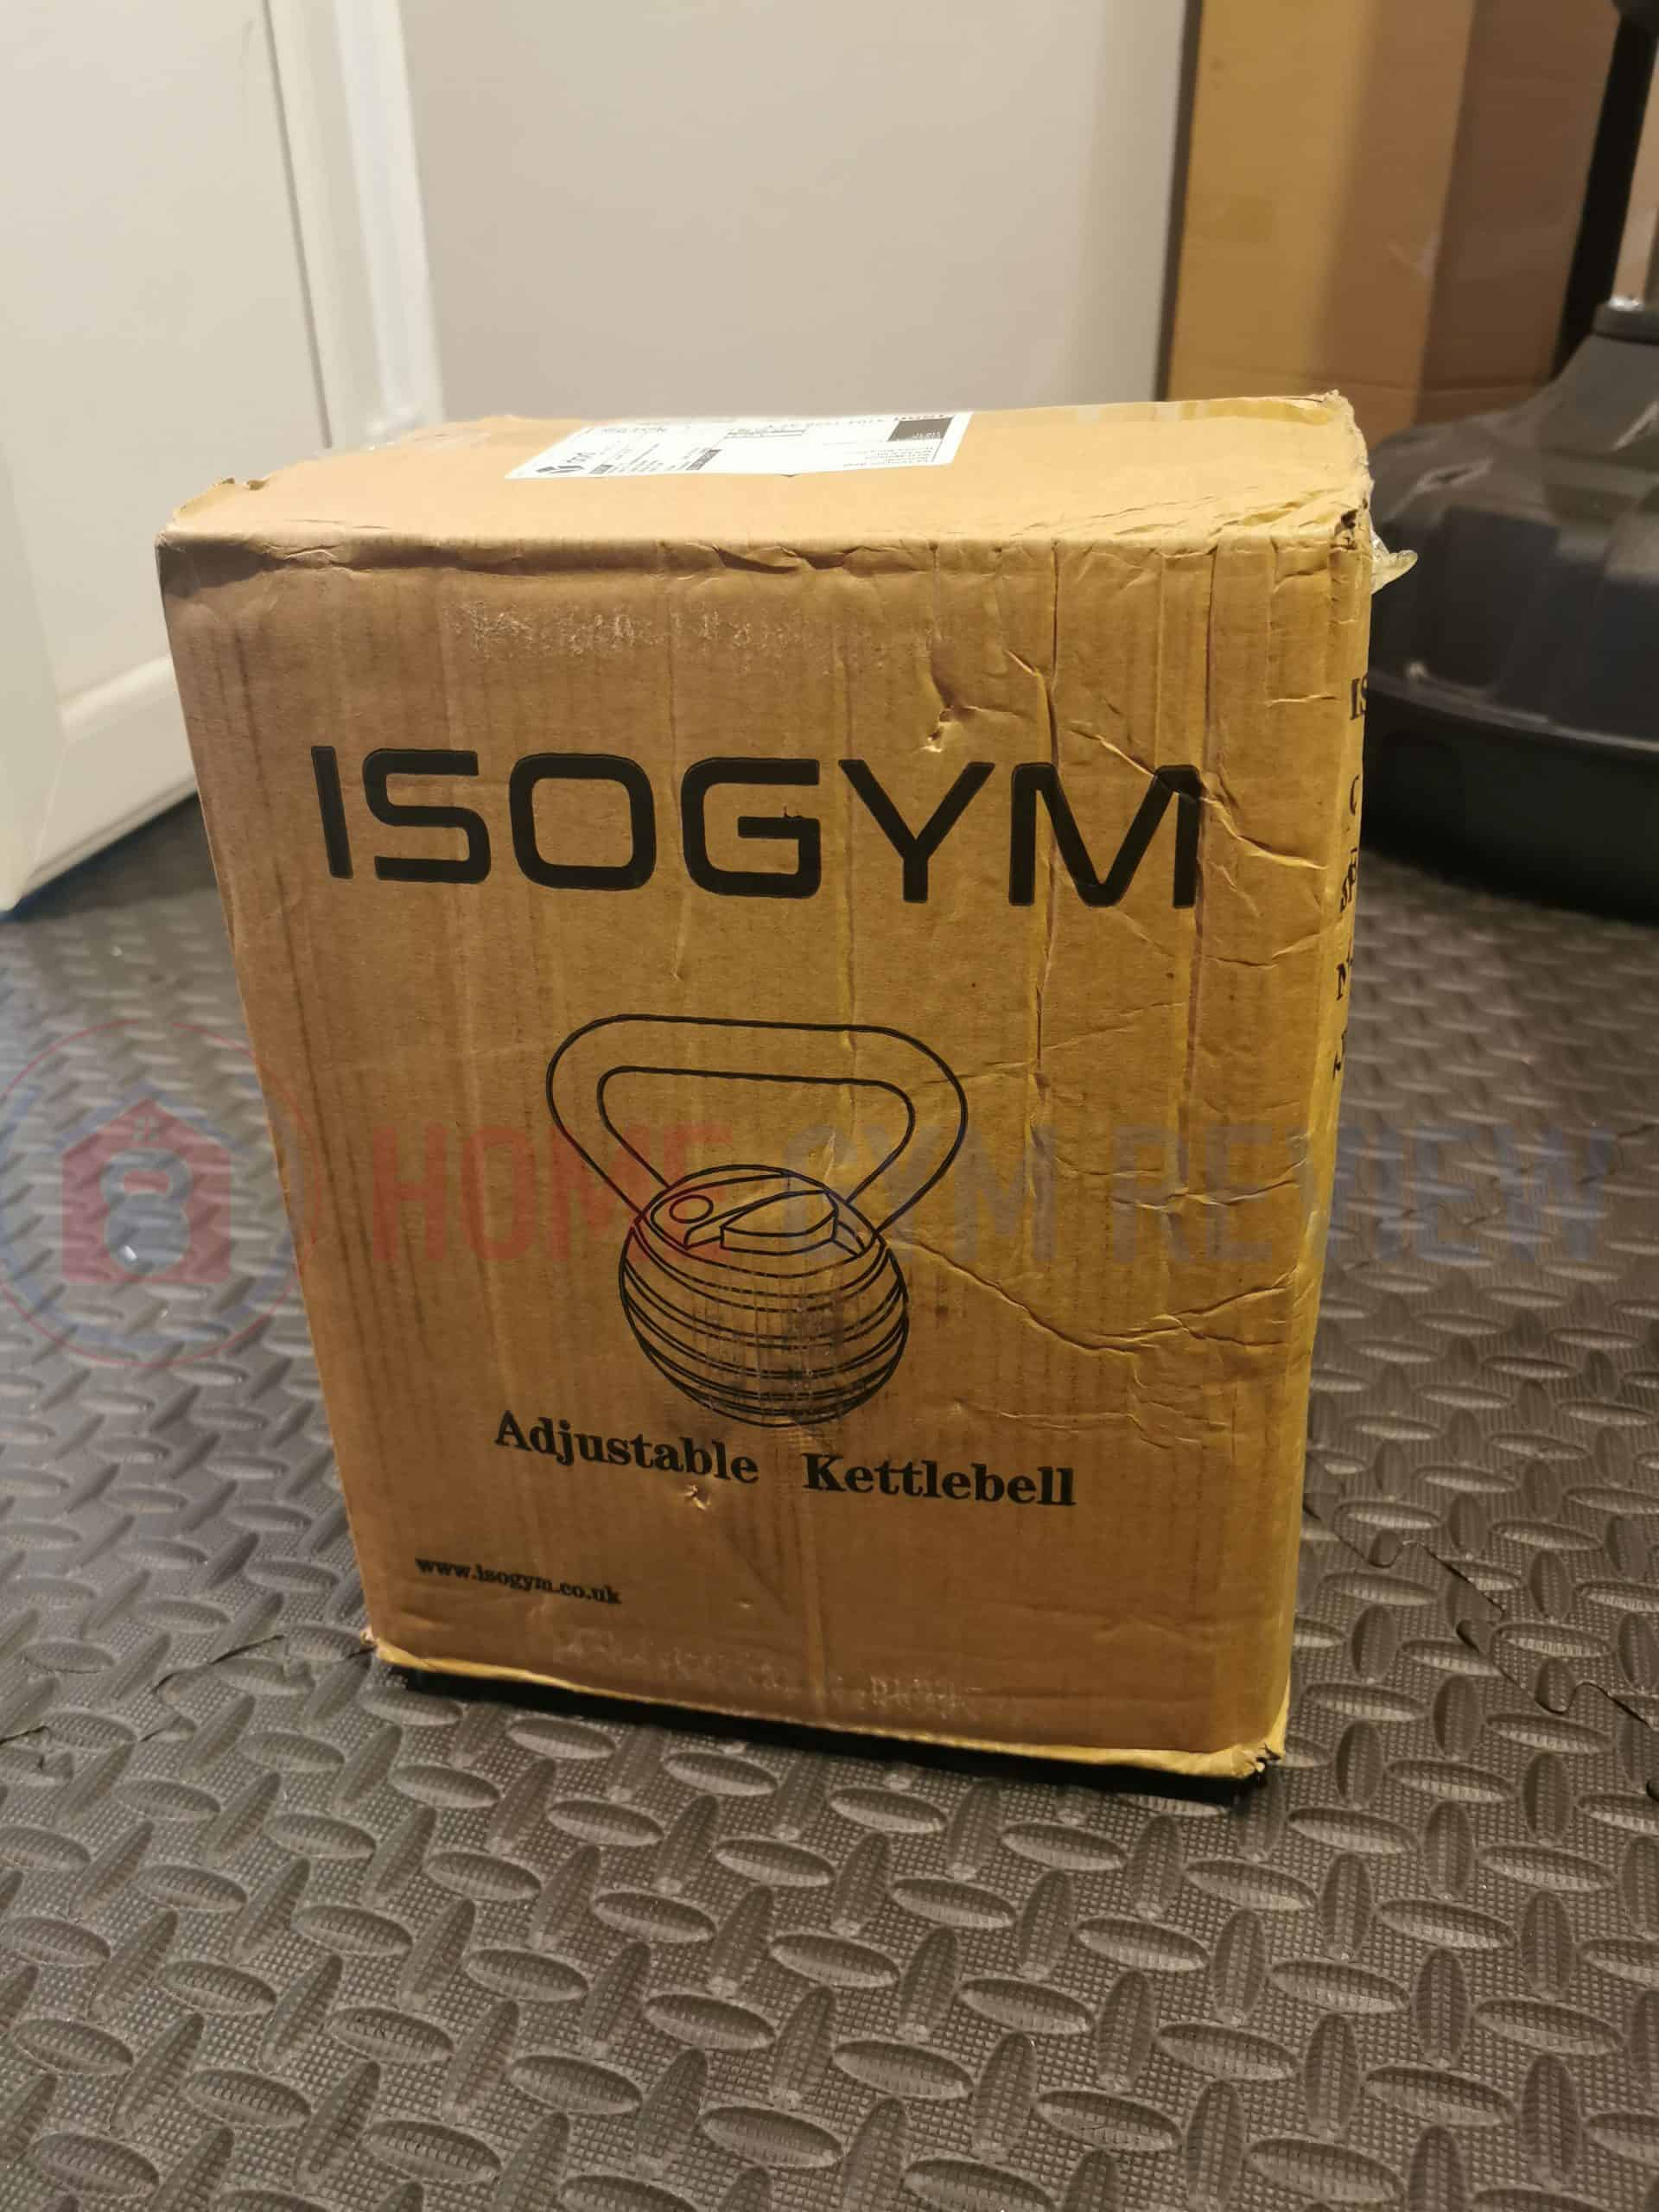 UNBOXING MY ADJUSTABLE KETTLEBELL